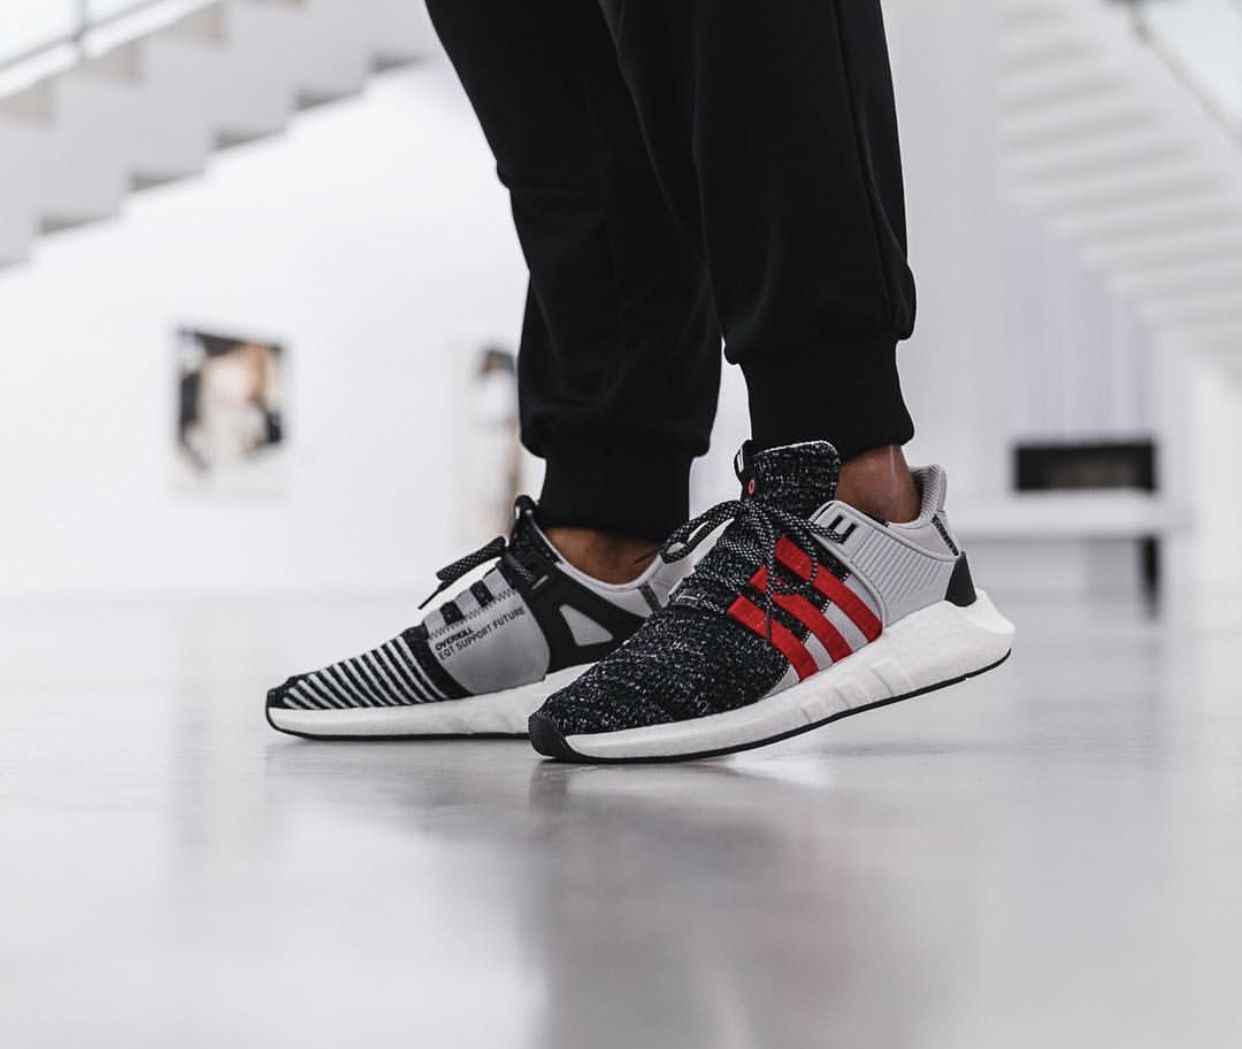 the latest 42f9b 16f4c Adidas x Overkill consortium release. EQT Support 9317